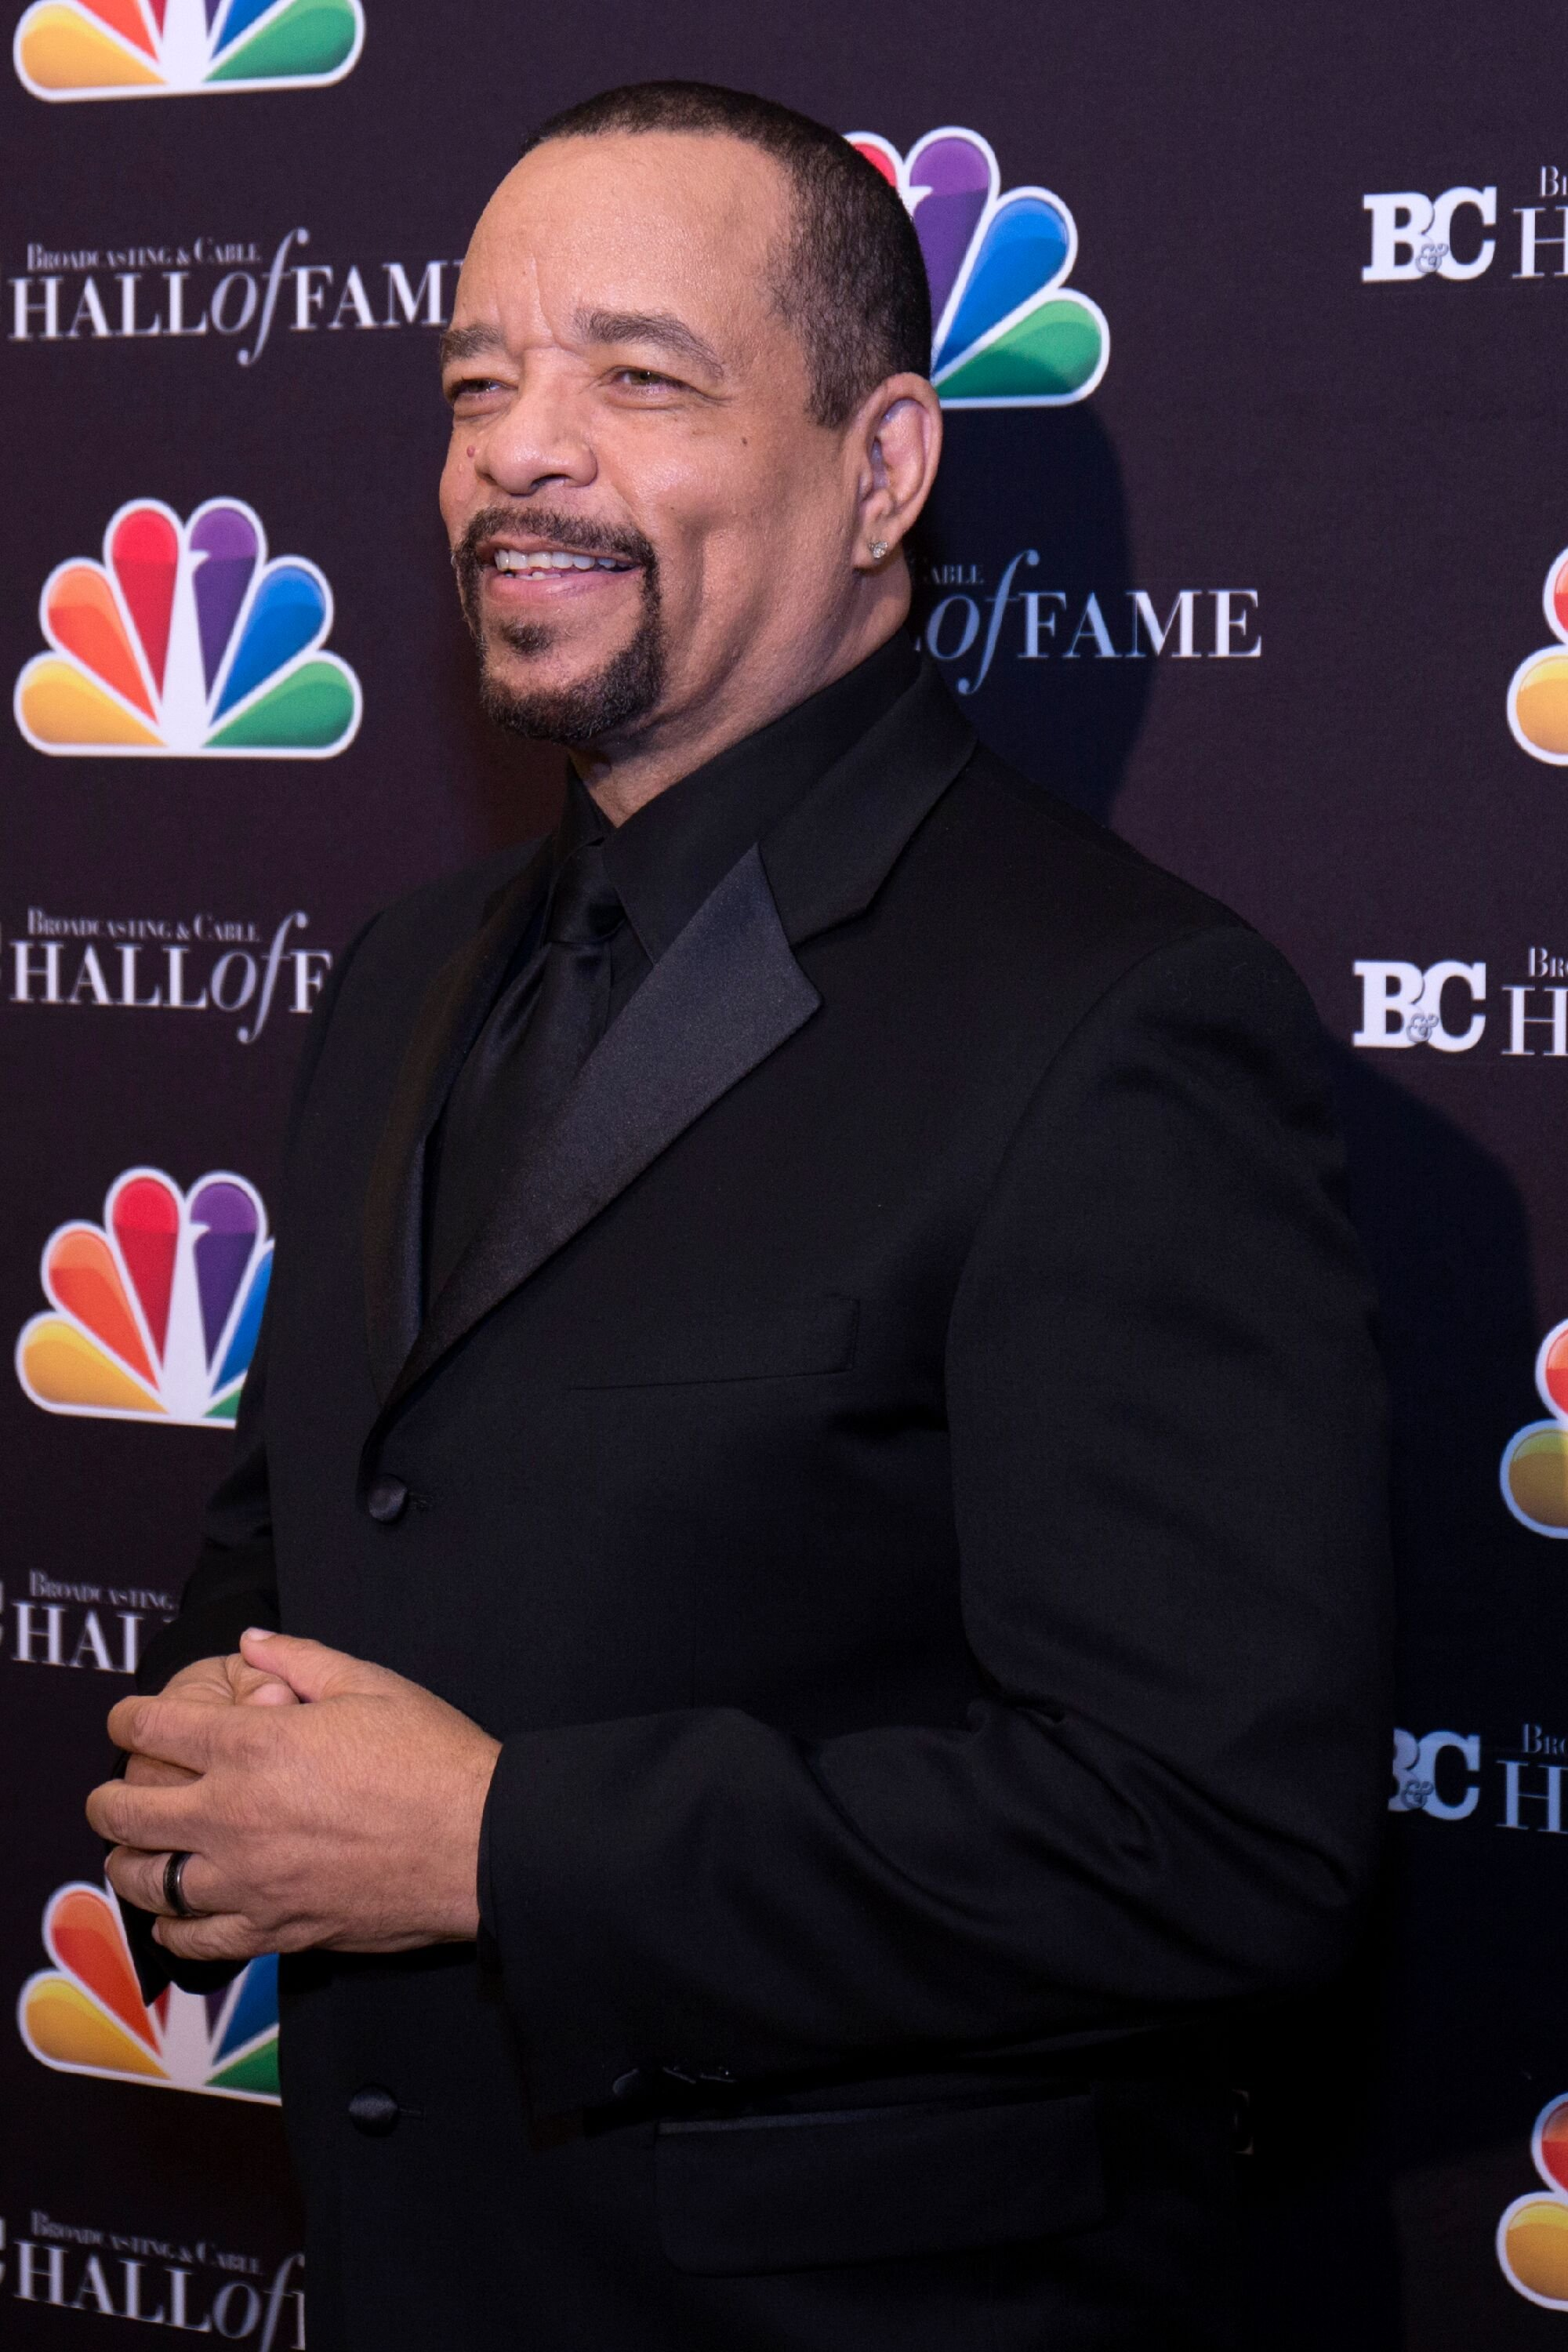 Ice-T attends the 2017 Broadcasting & Cable Hall Of Fame 27th Anniversary Gala. | Source: Getty Images